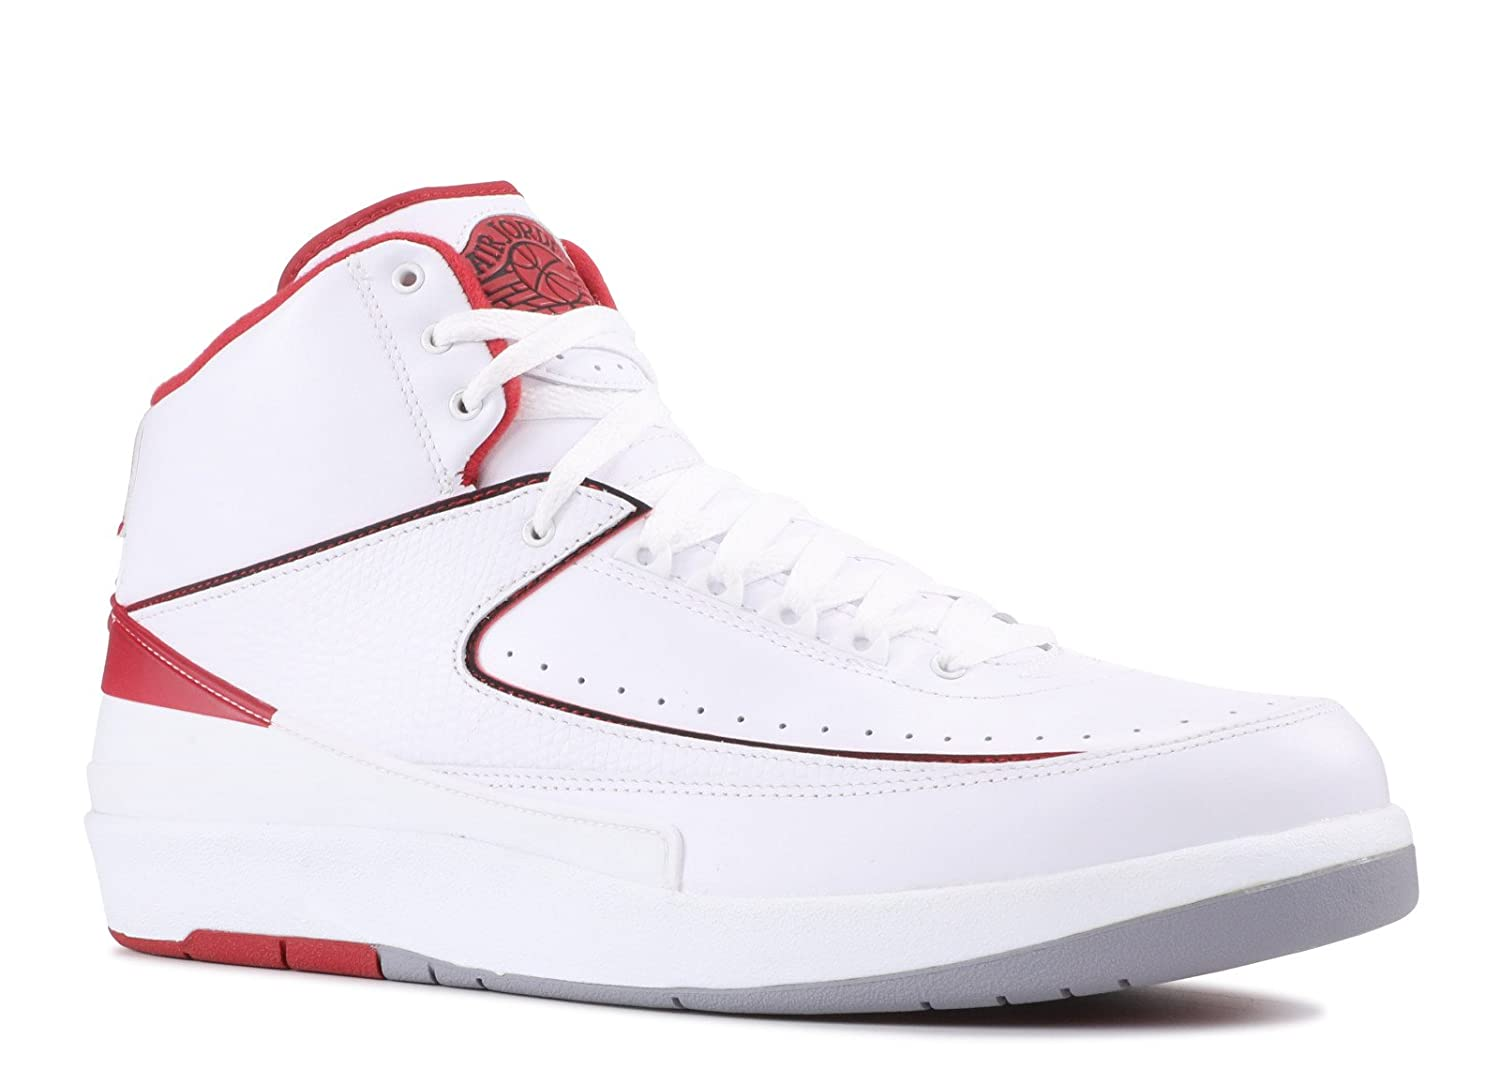 dab104081ba Amazon.com | NIKE Mens Air Jordan 2 Retro OG Colorway White/Black-Varsity  Red-Cement Grey Leather Basketball Shoes Size 11.5 | Basketball